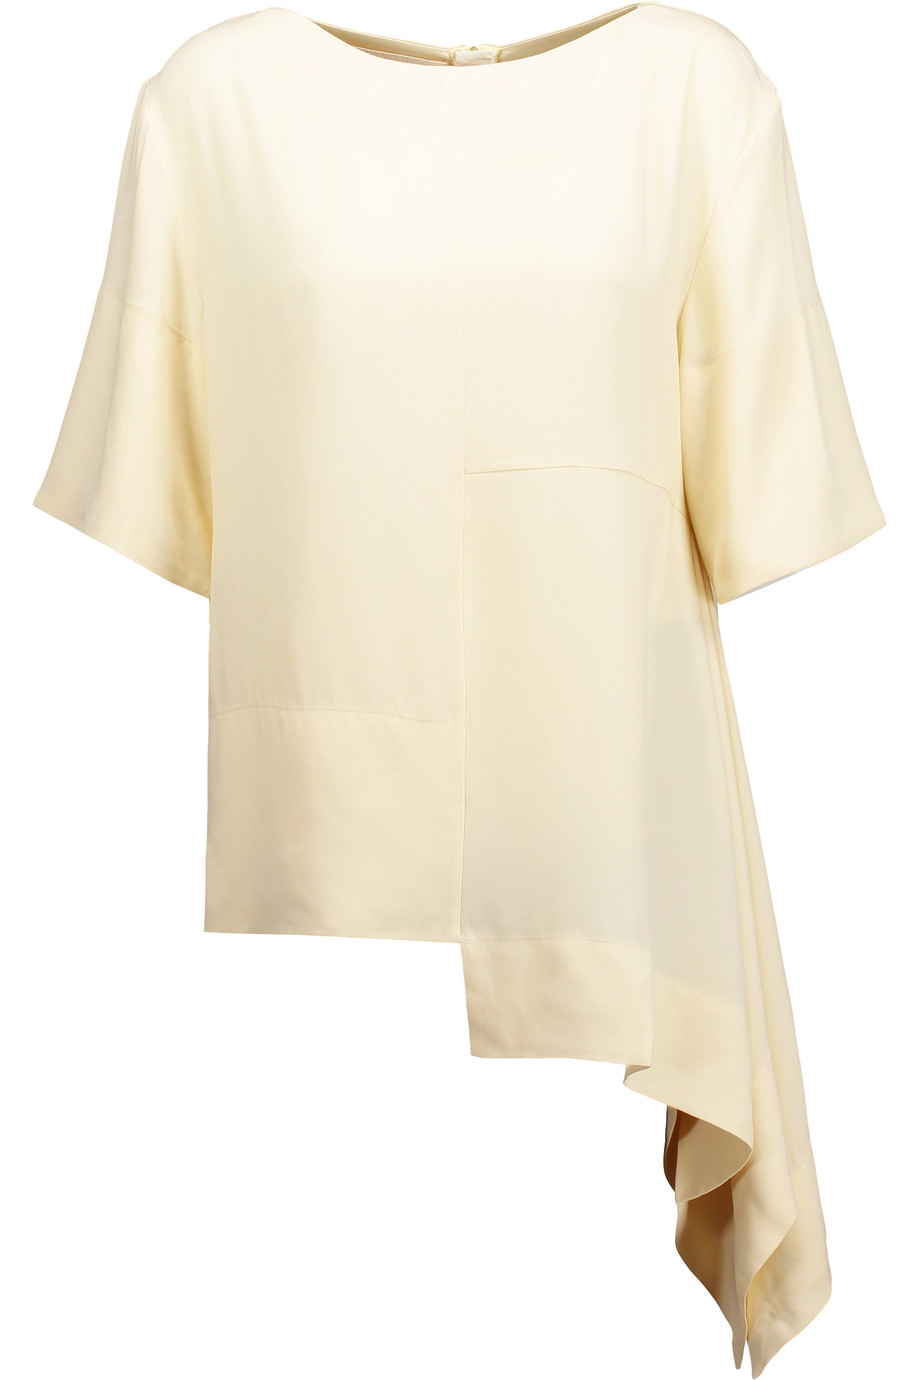 short sleeve blouse Marni buy short sleeve blouse Marni internet shop